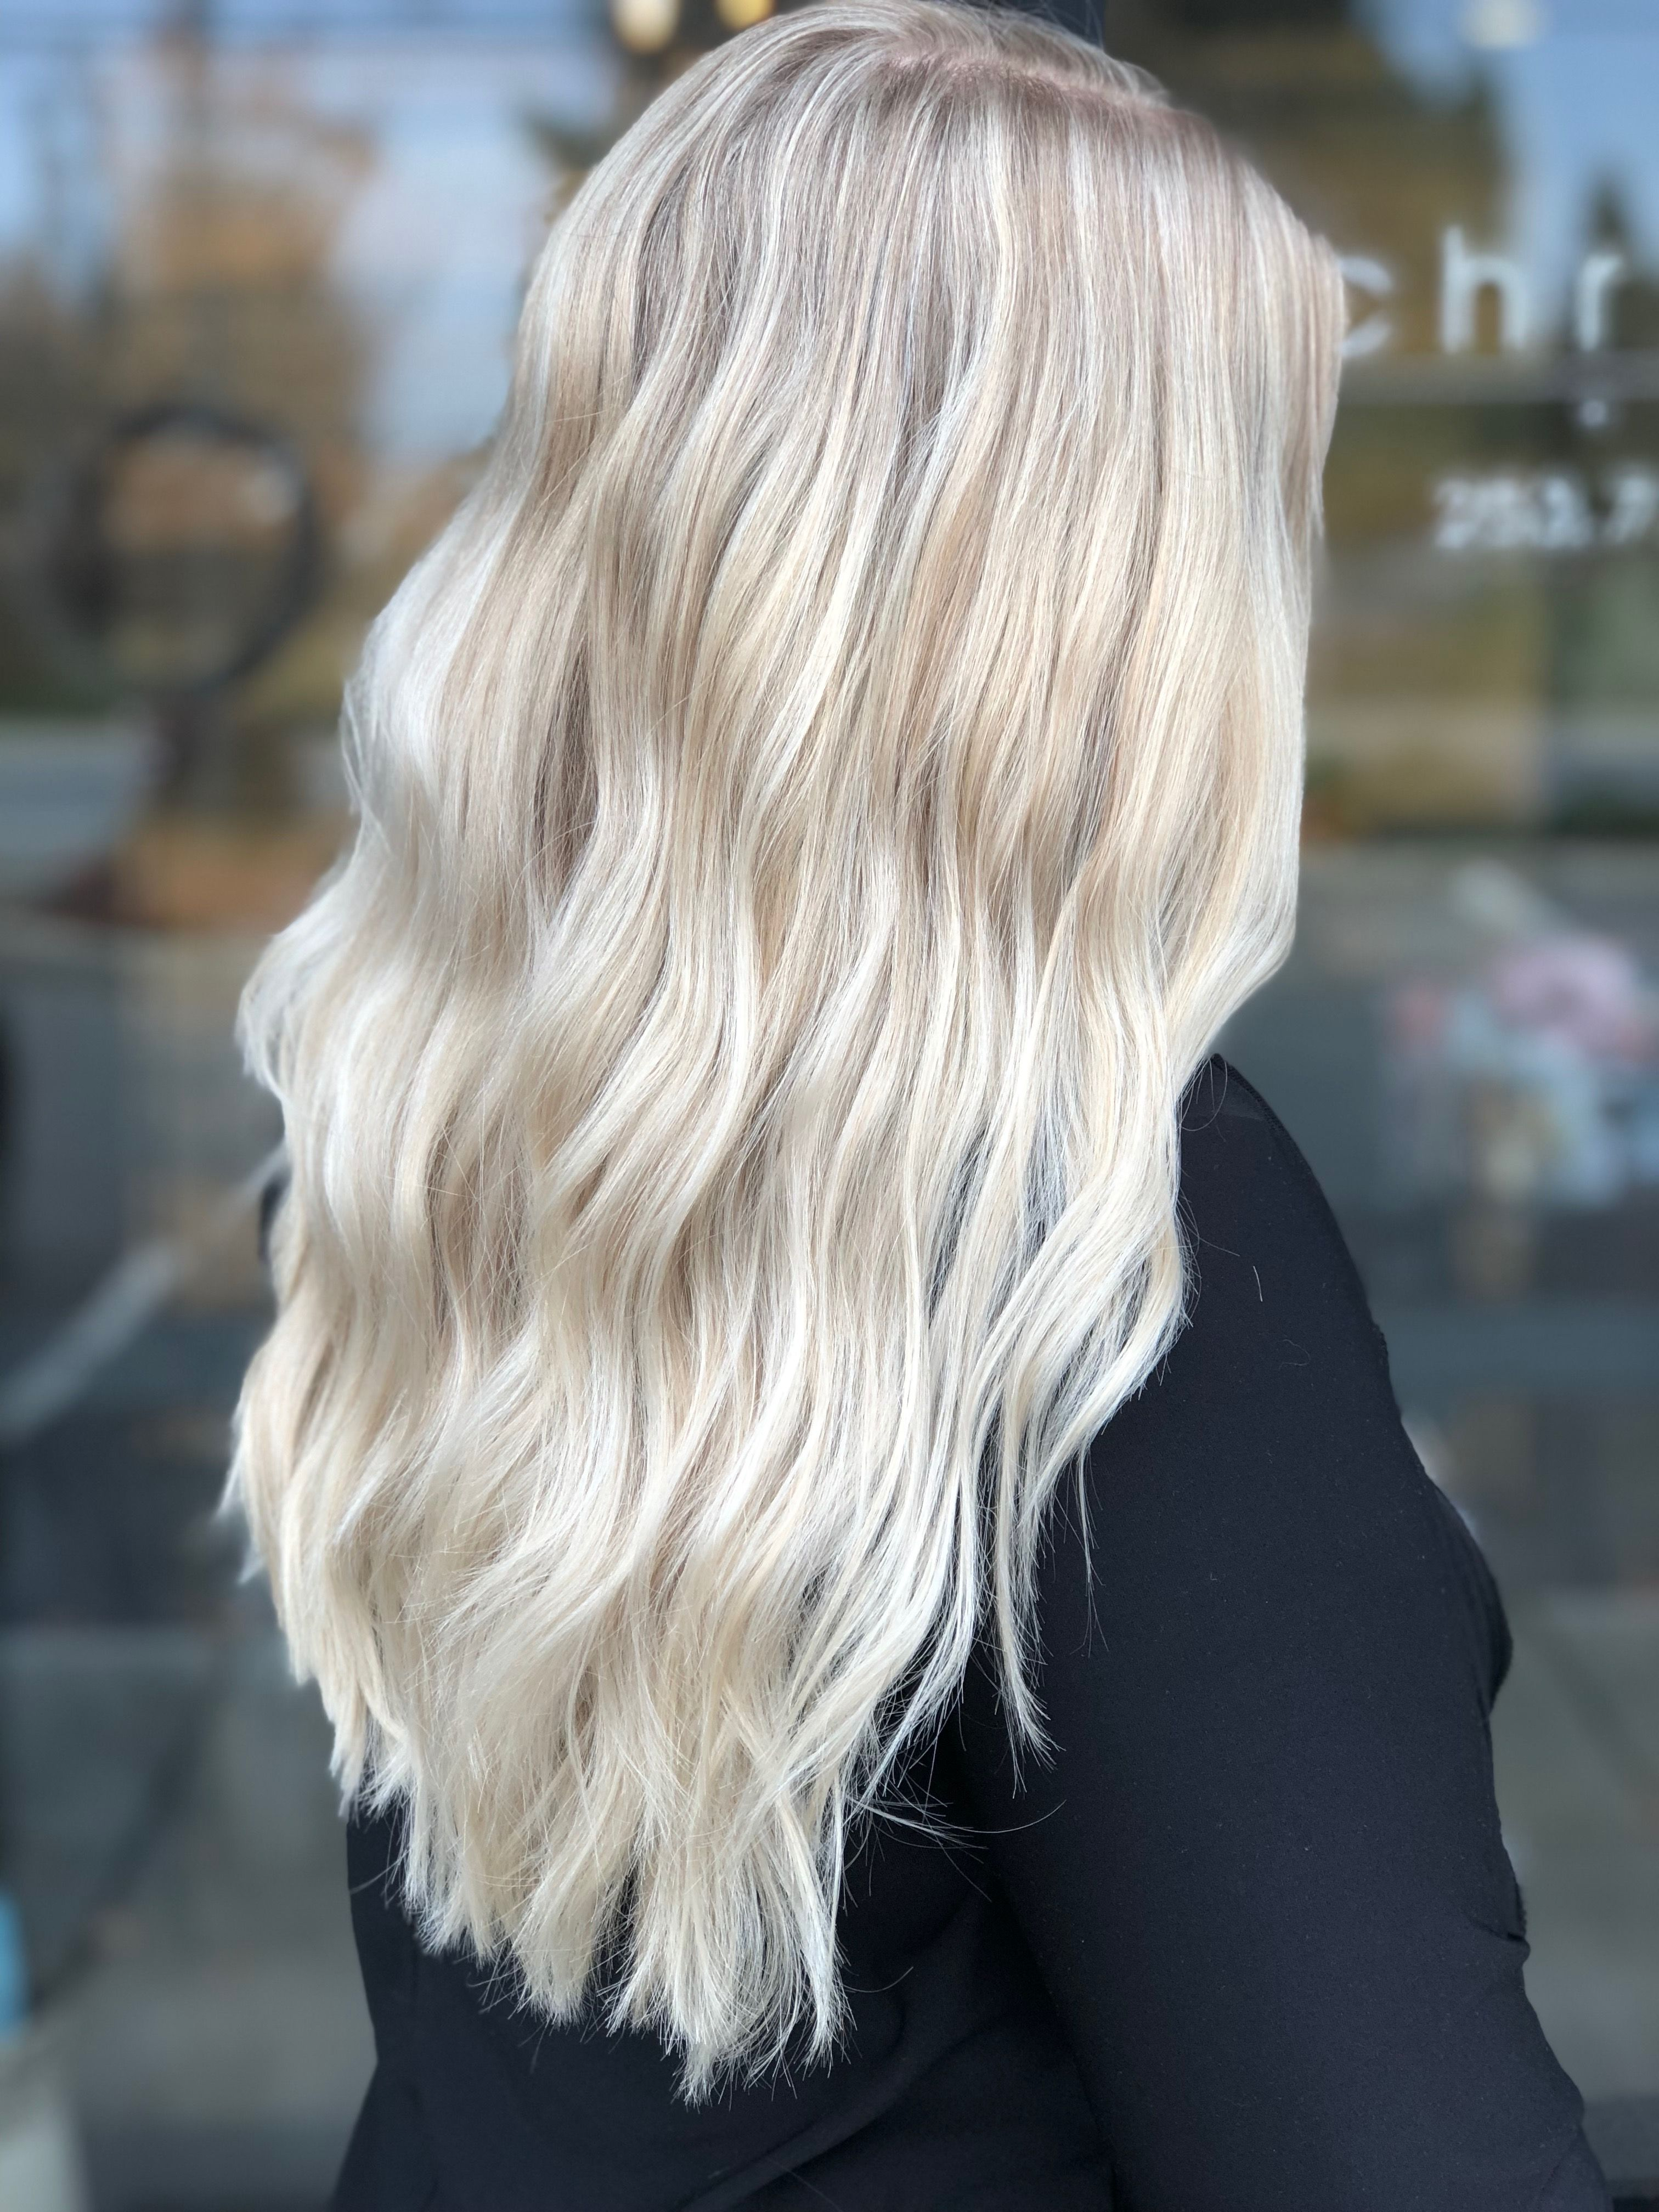 💙 winter blonde ❄️ by Terry Ross Tacoma,WA  Cool blonde hair